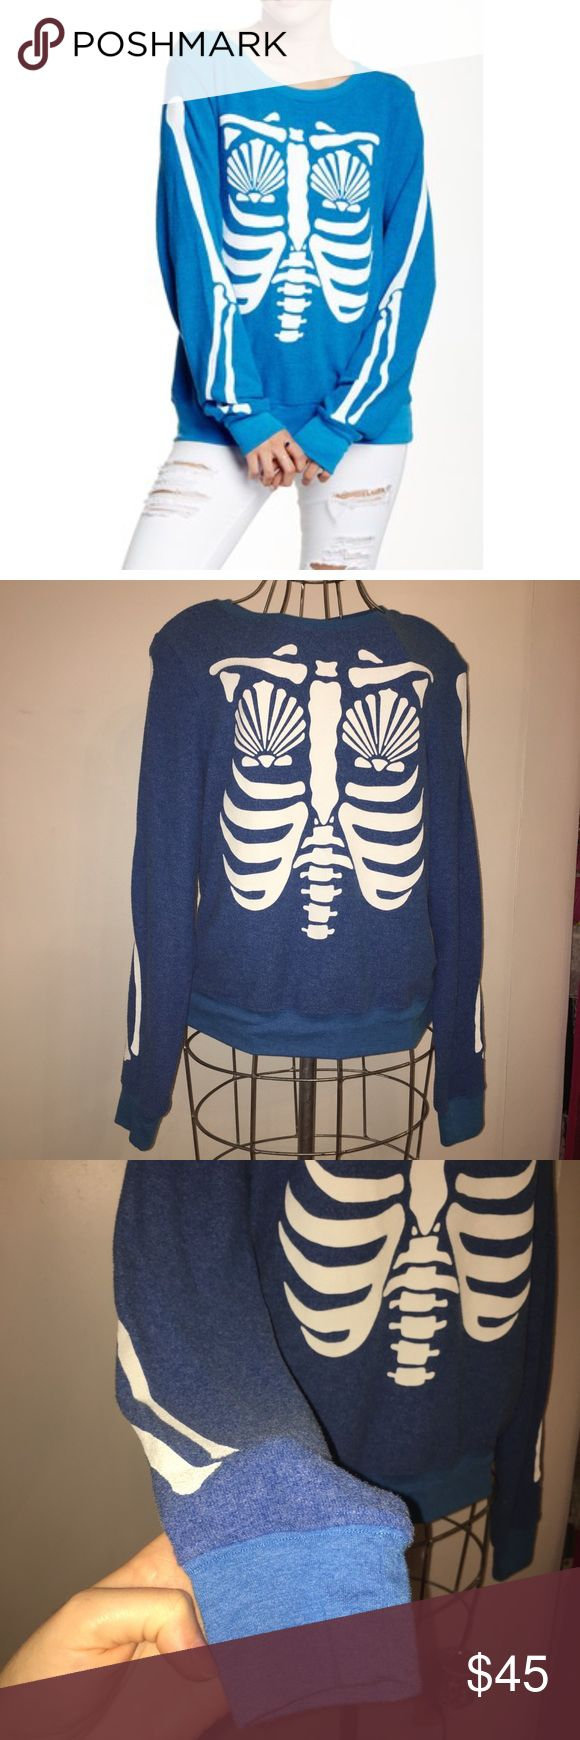 Skeleton mermaid sweater Blue and white Wildfox mermaid skeleton pullover sweater jumper size medium, good condition lightly worn. Light pilling and wear Wildfox Sweaters